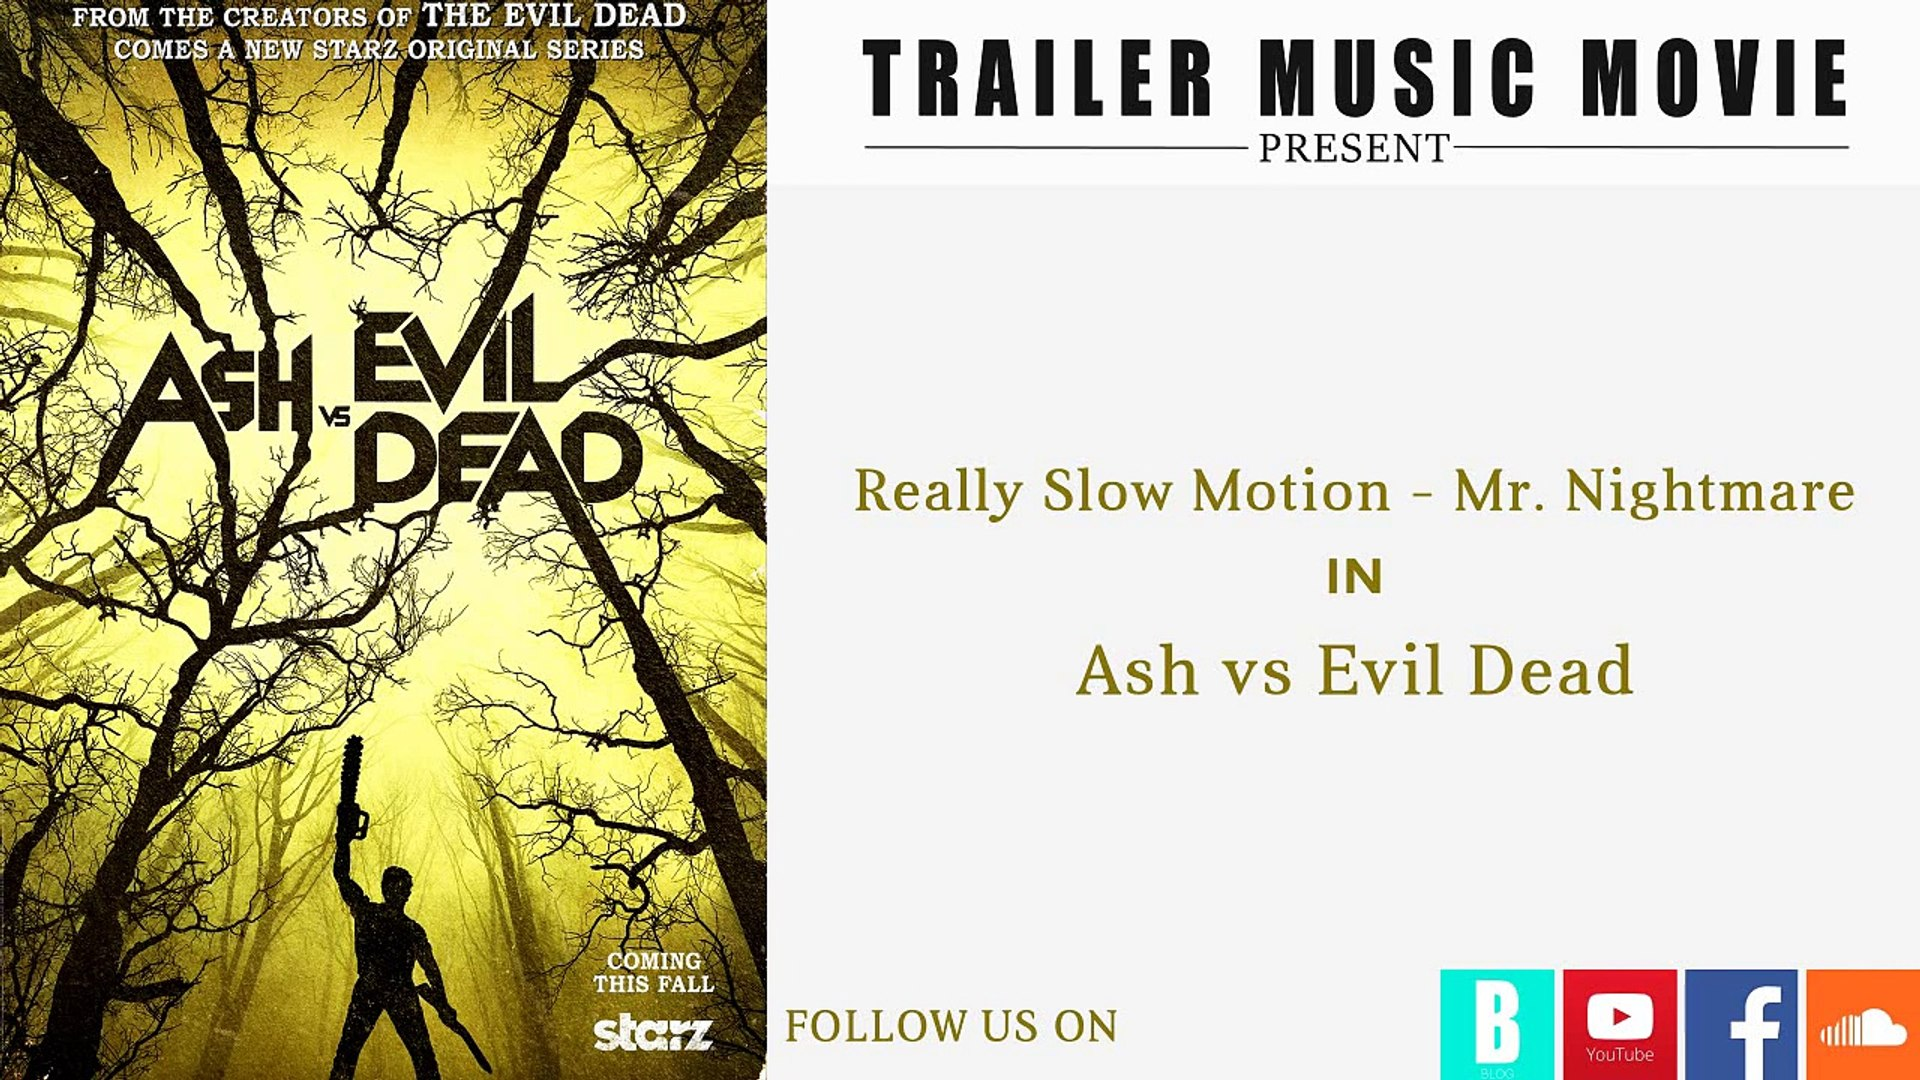 Ash Vs Evil Dead Trailer Music Really Slow Motion Mr Nightmare Video Dailymotion Последние твиты от mr nightmare (@mista_nightmare). dailymotion